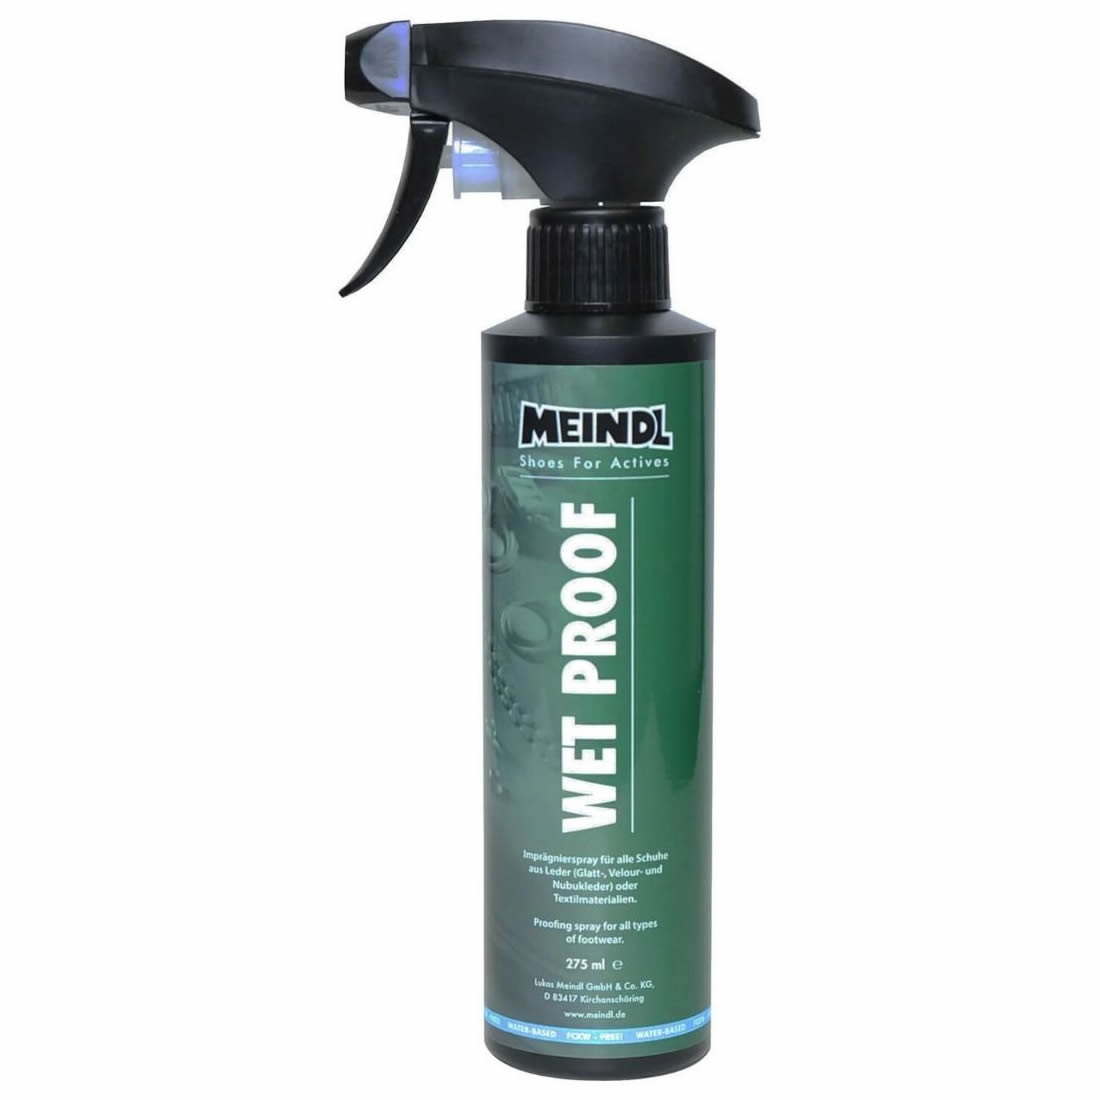 Meindl Wet-Proof Imprägnierspray